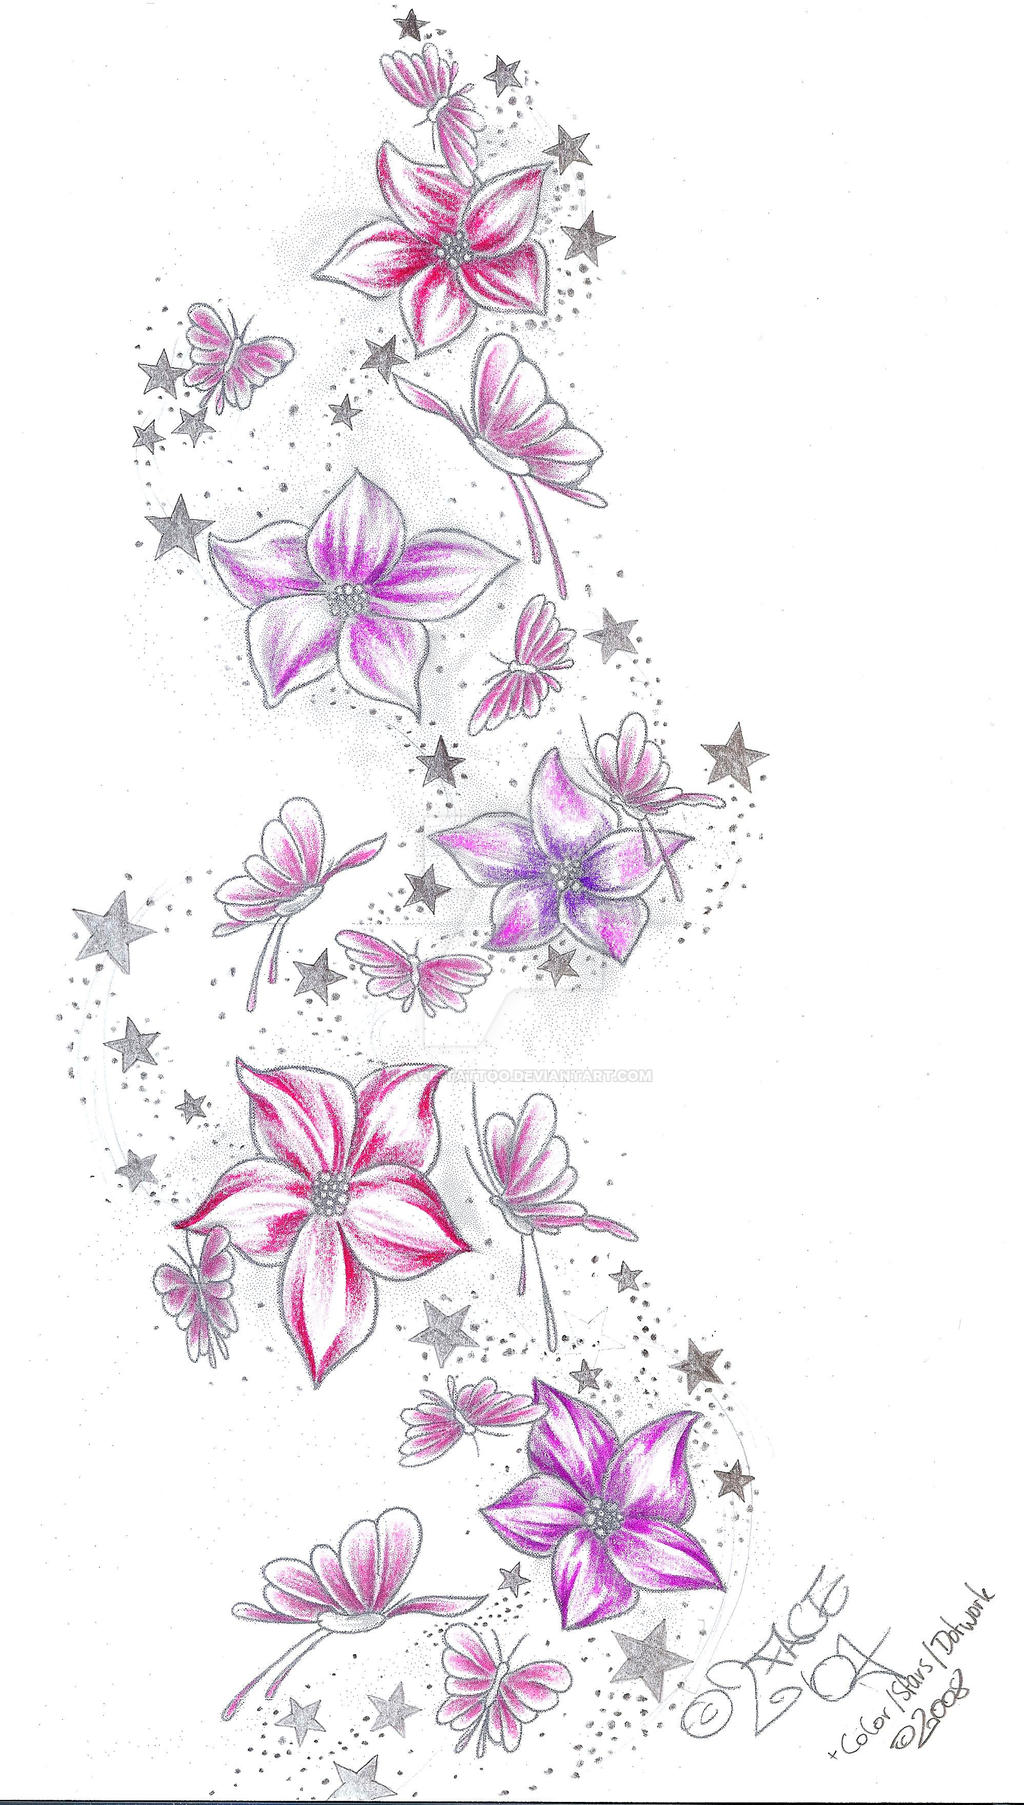 Stars flower butterflies color by 2face tattoo on deviantart for Star and flower tattoos